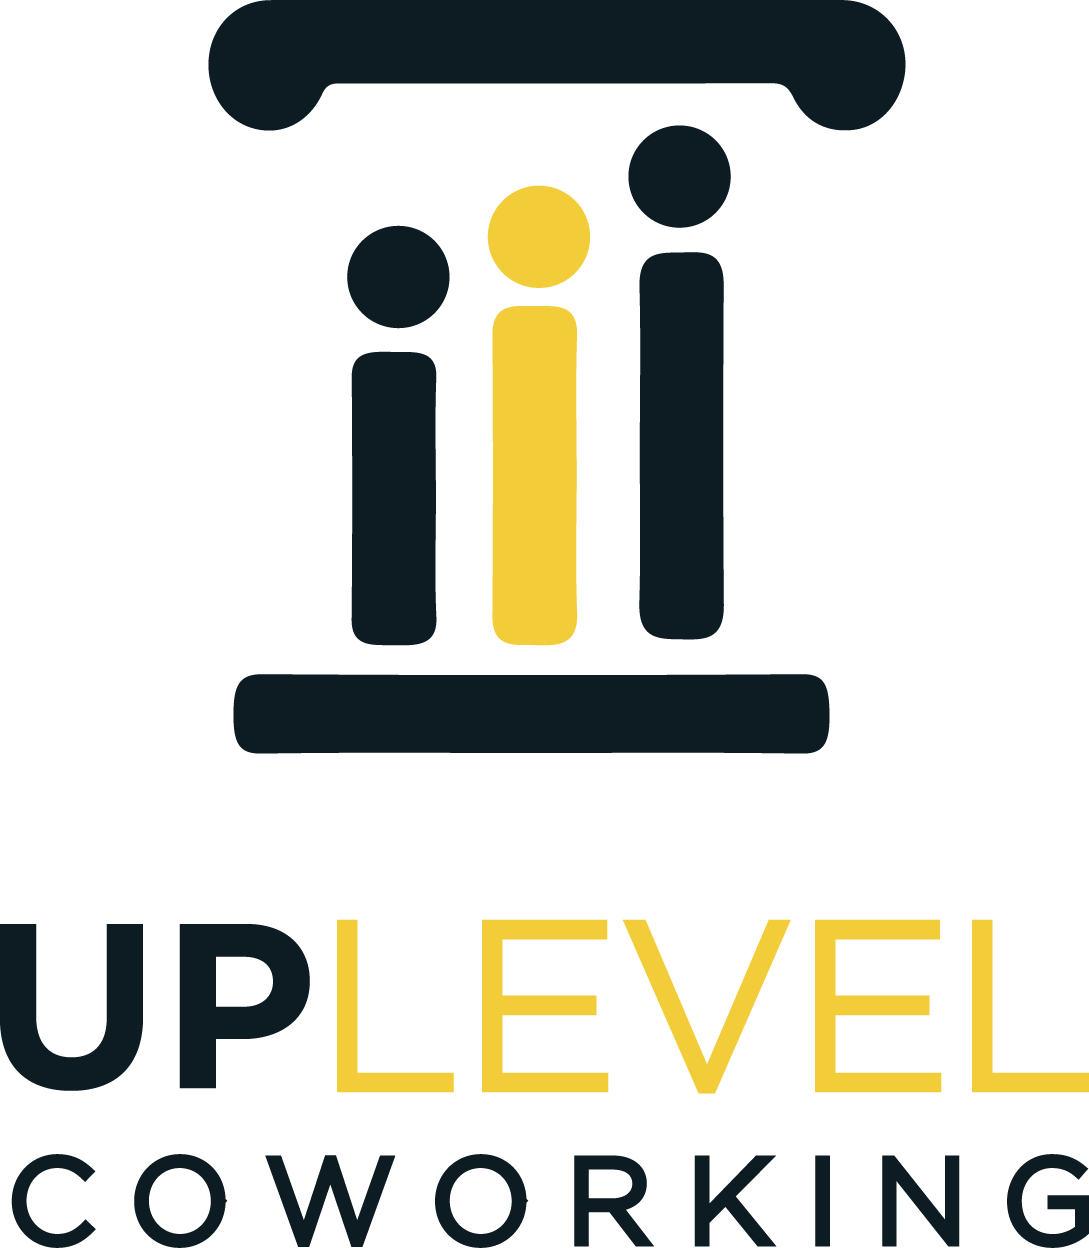 growth oriented coworking (UpLevel) needs a logo